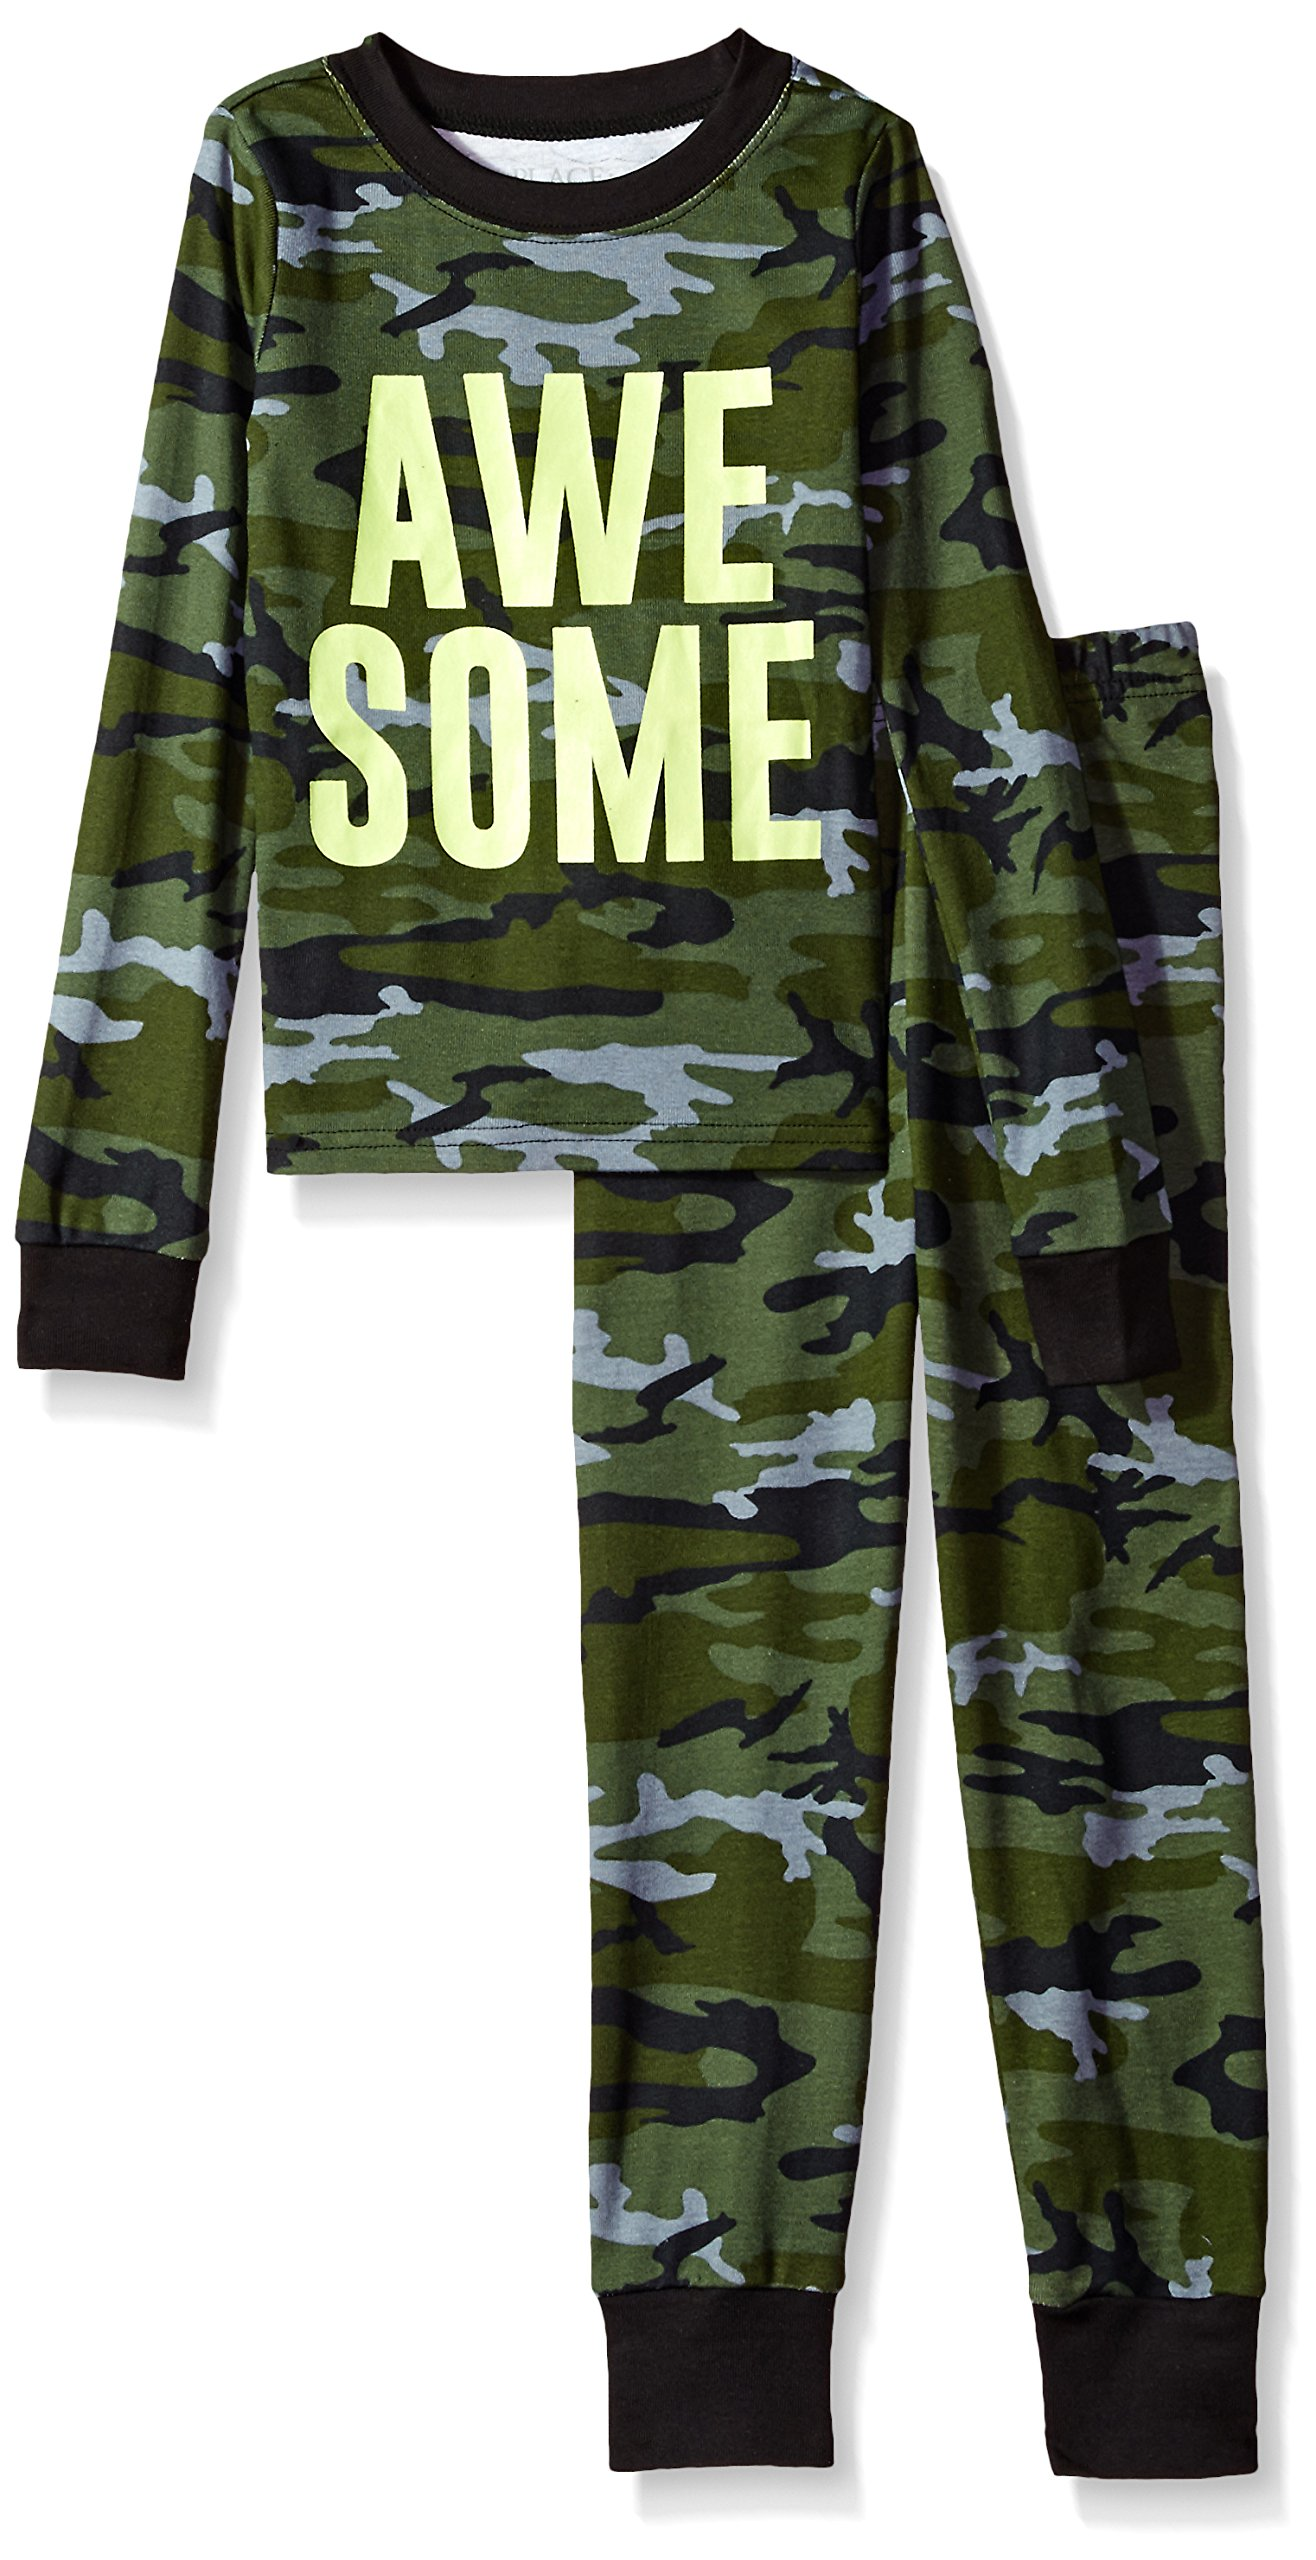 The Children's Place Big Boys' Awesome Camoflauge 2 Piece Sleepwear Set, Truly Olive 92207, 5